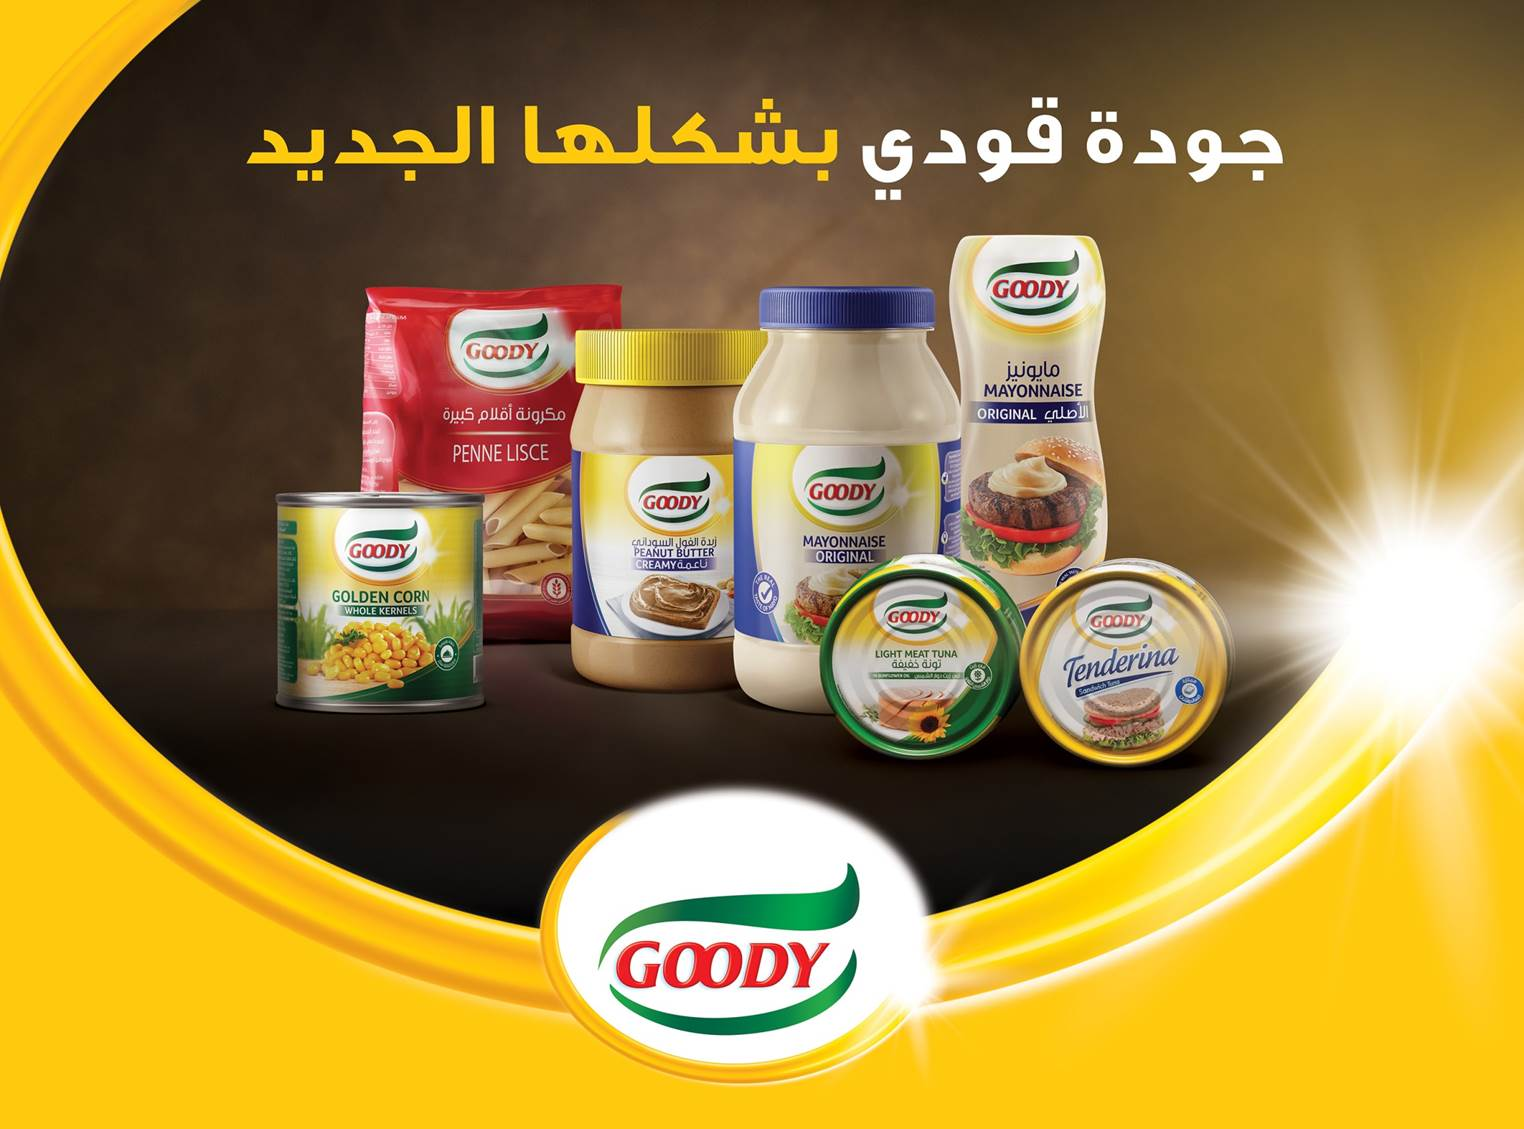 Goody Launches its New Brand Identity (Goody Circle of Amazement)